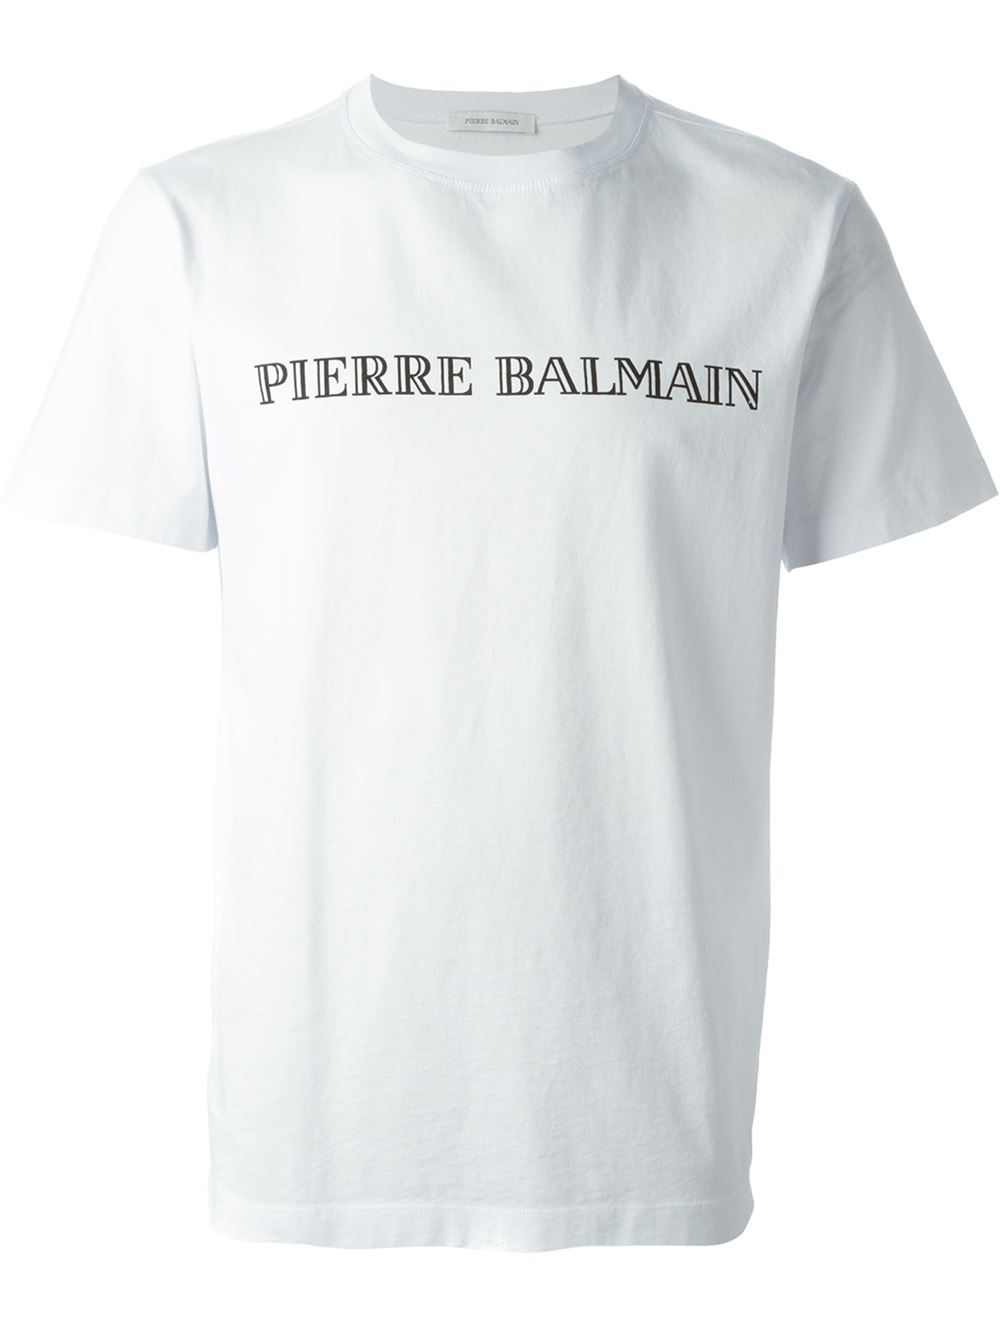 Find great deals on eBay for balmain t shirt. Shop with confidence.